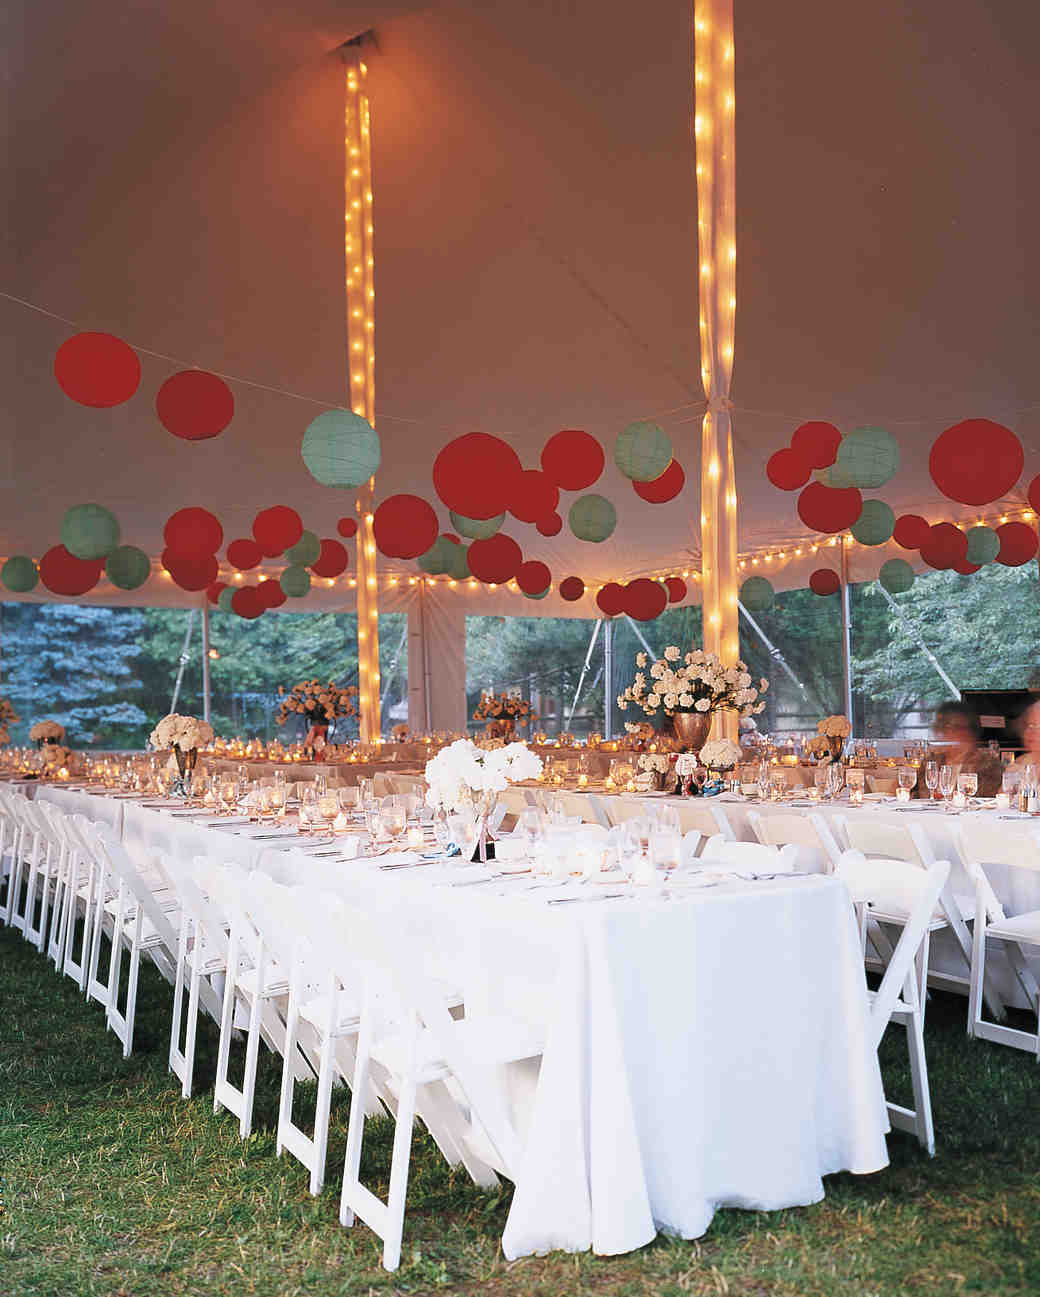 Evening Wedding Reception Decoration Ideas: 33 Tent Decorating Ideas To Upgrade Your Wedding Reception